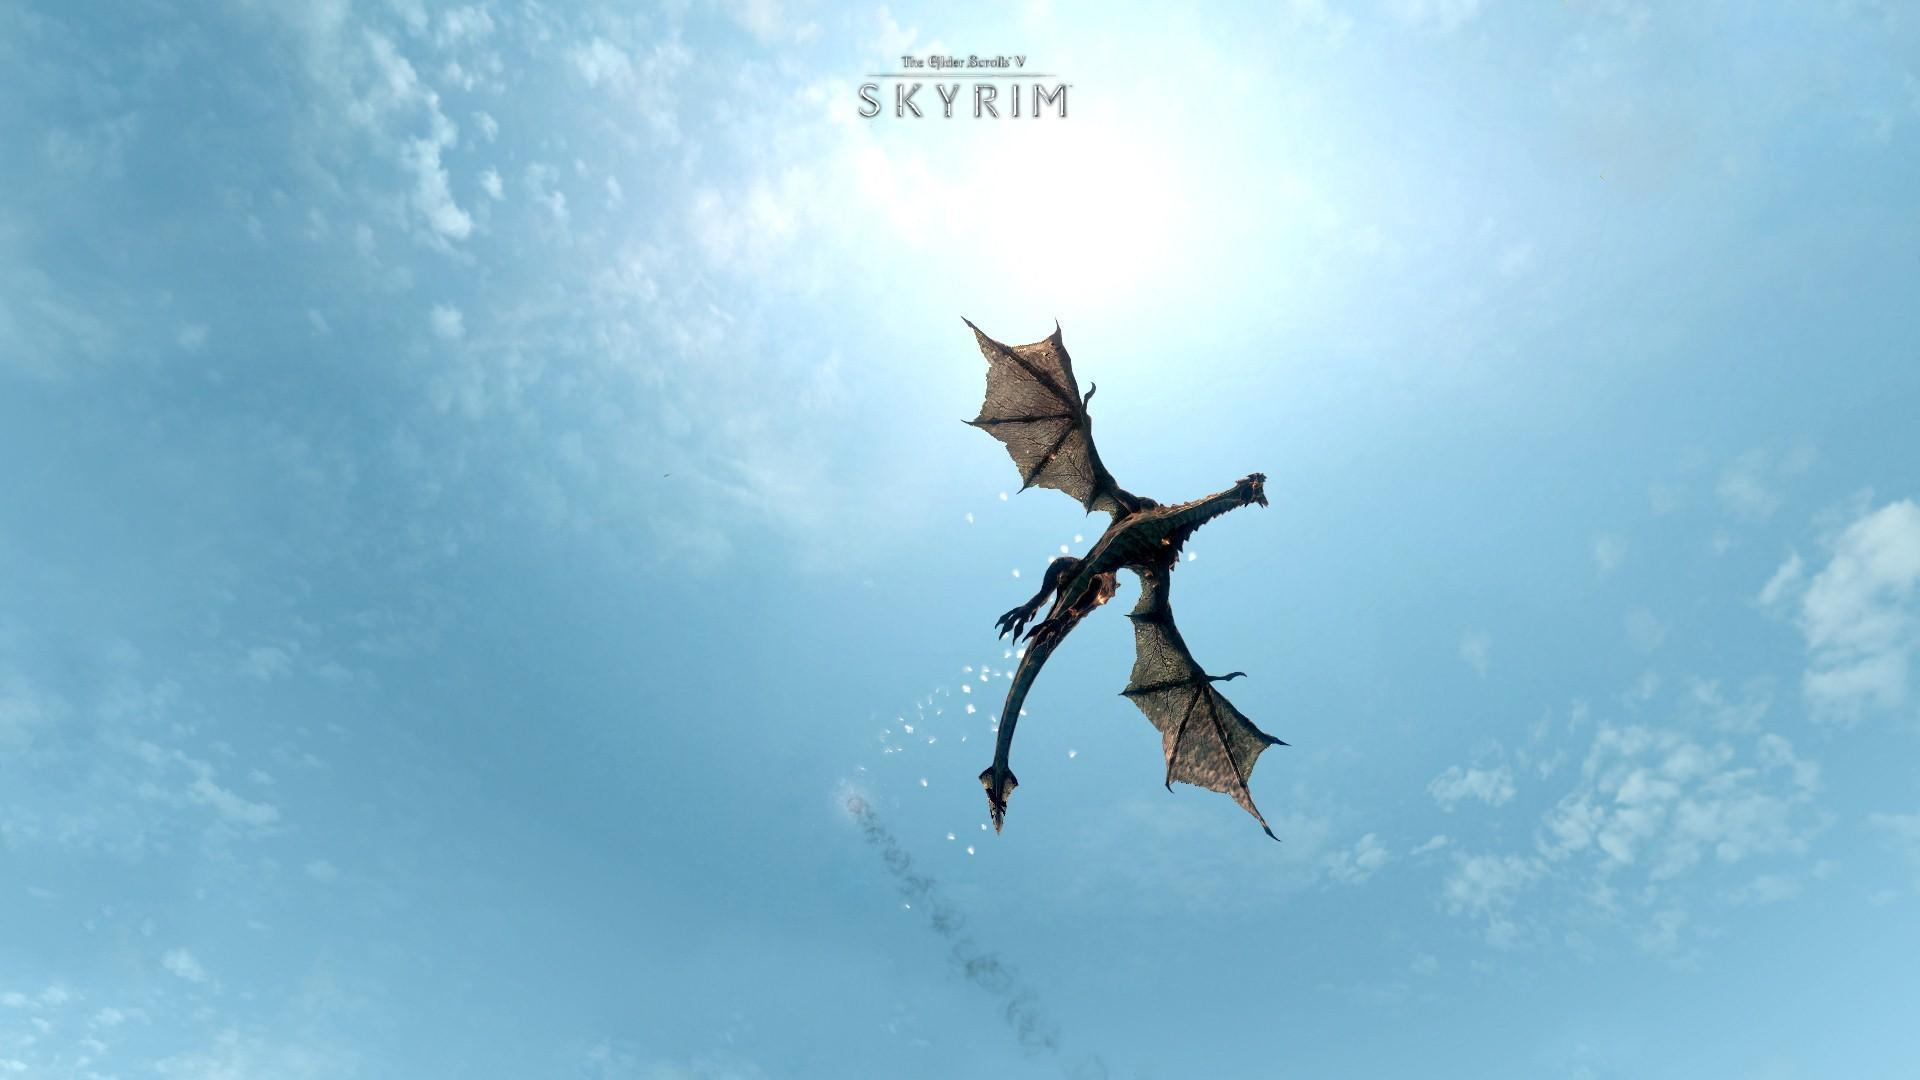 Wallpaper The Elder Scrolls V: Skyrim flying dragon